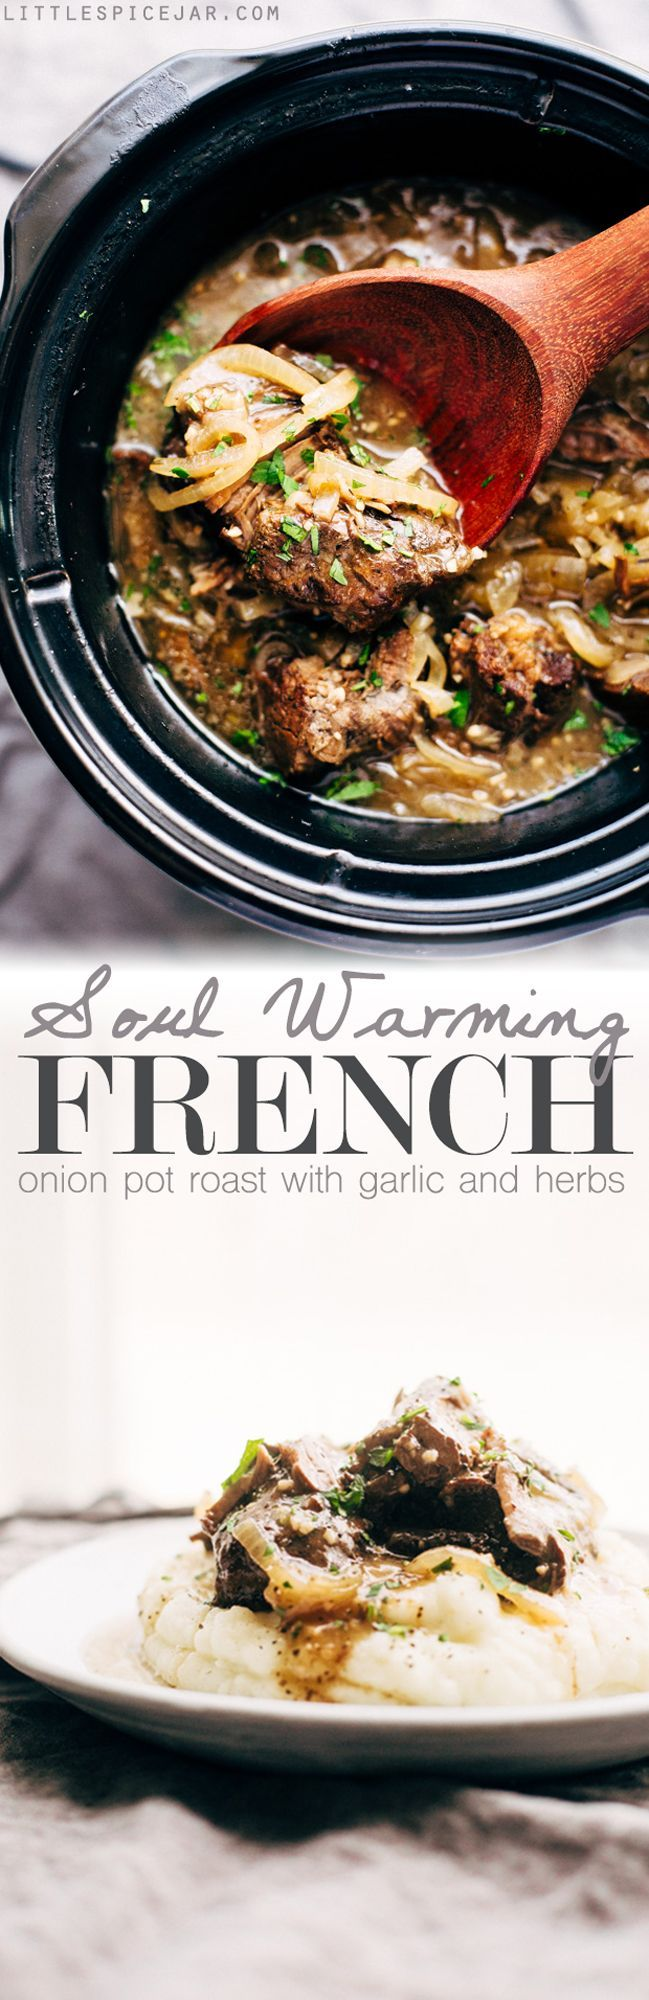 Soul Warming French Onion Pot Roast - A simple pot roast that combines french onion soup with pot roast! Make it in the slow cooker on in the oven! #potroast #beefroast #frenchonionsoup #slowcooker